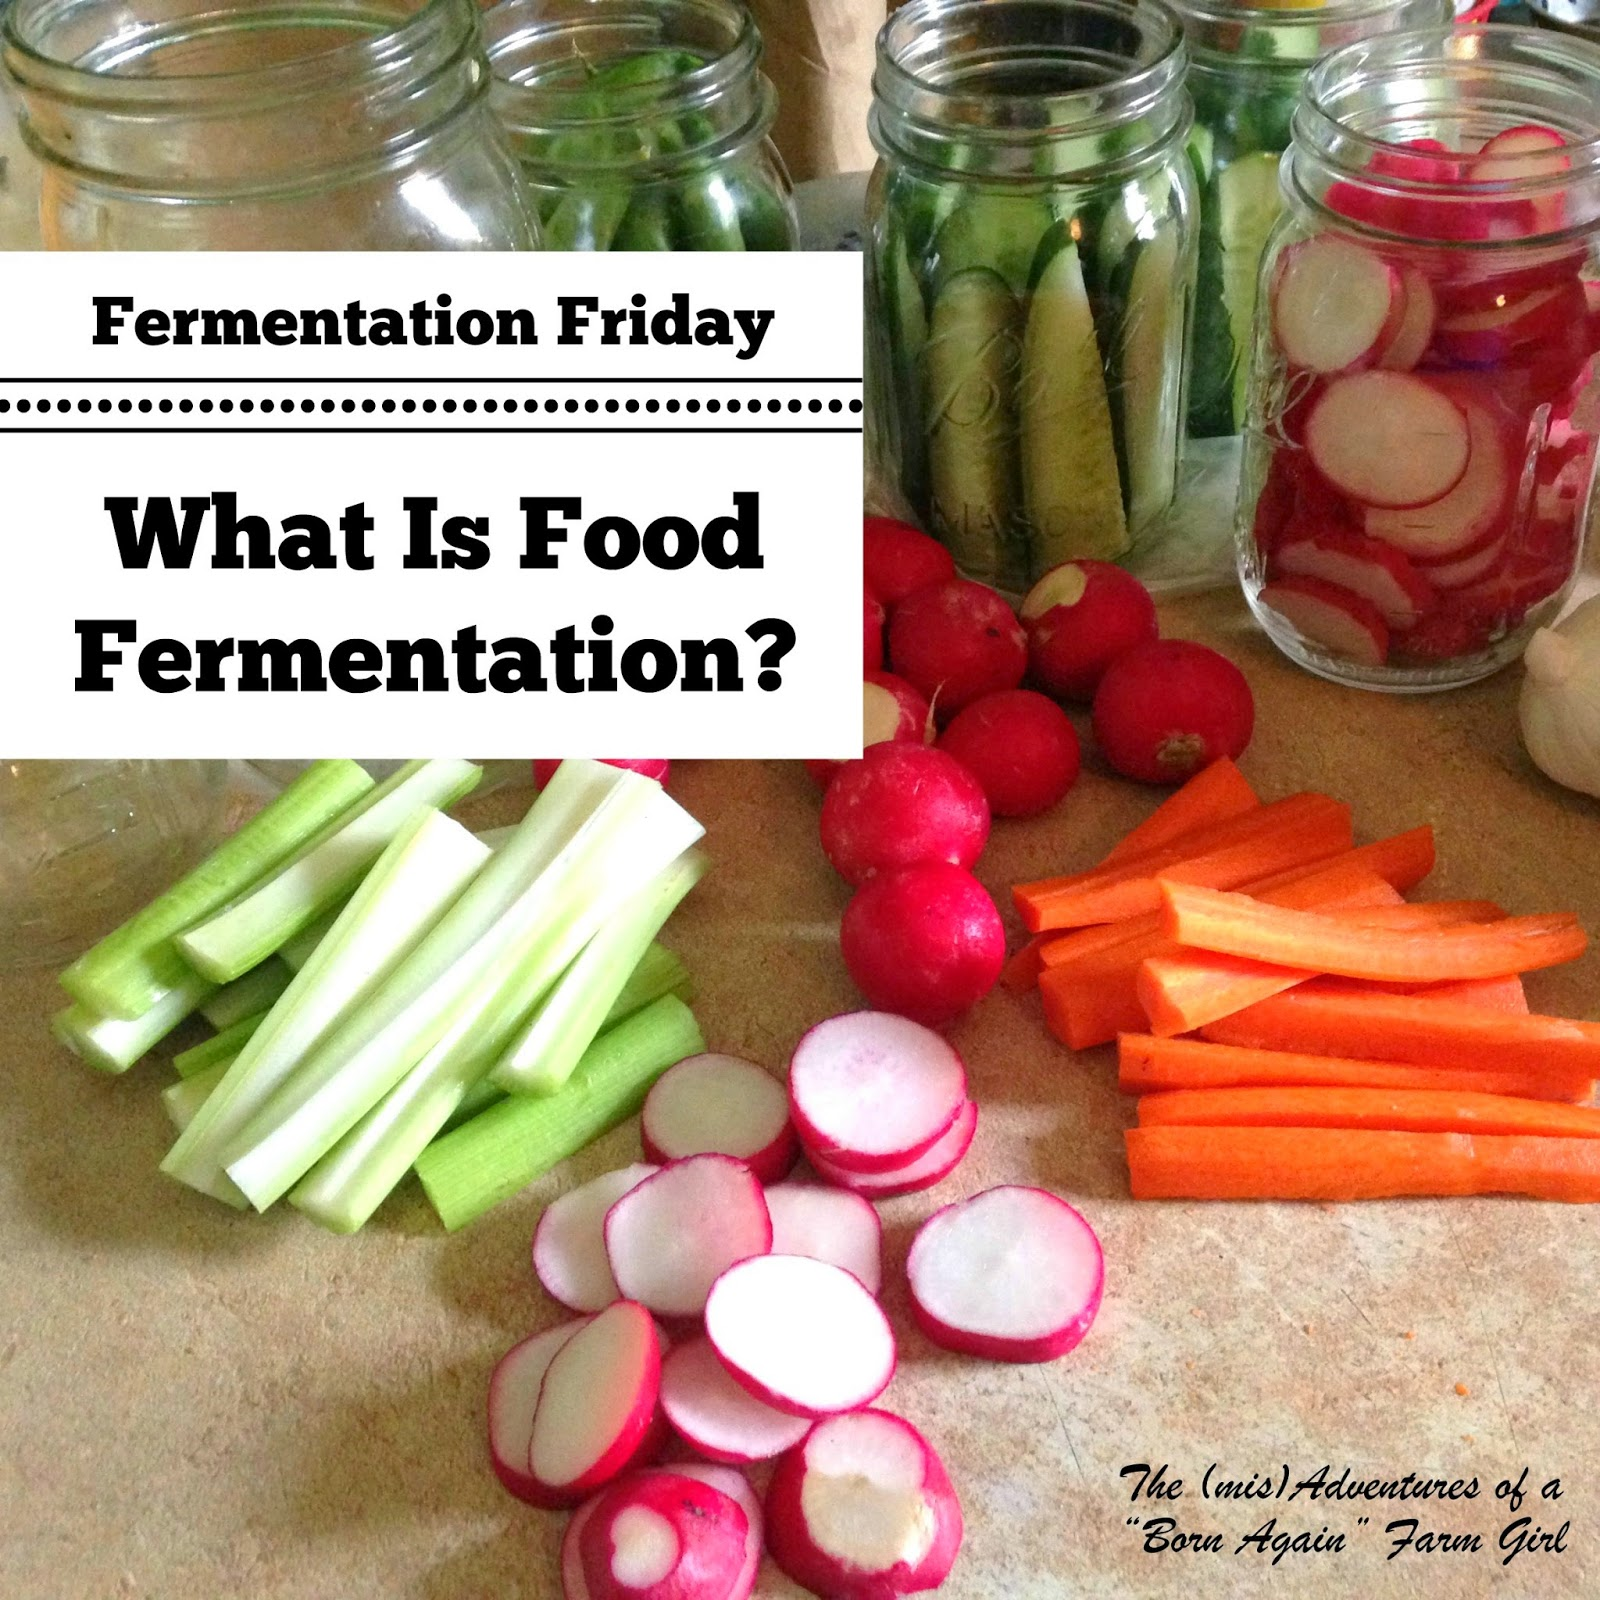 What Is Food Fermentation?